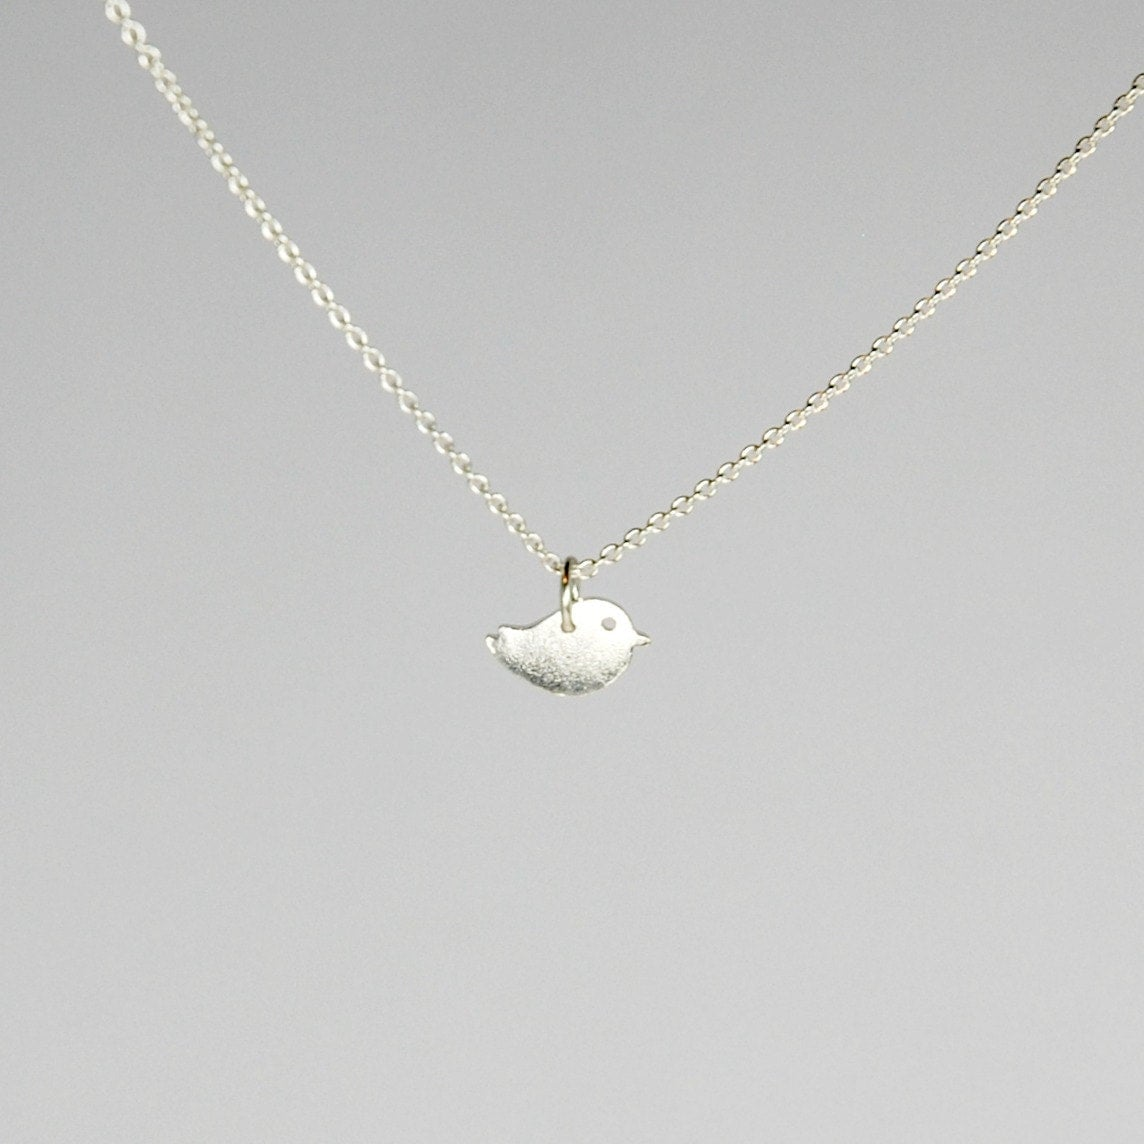 silver bird necklace sterling silver pendant new